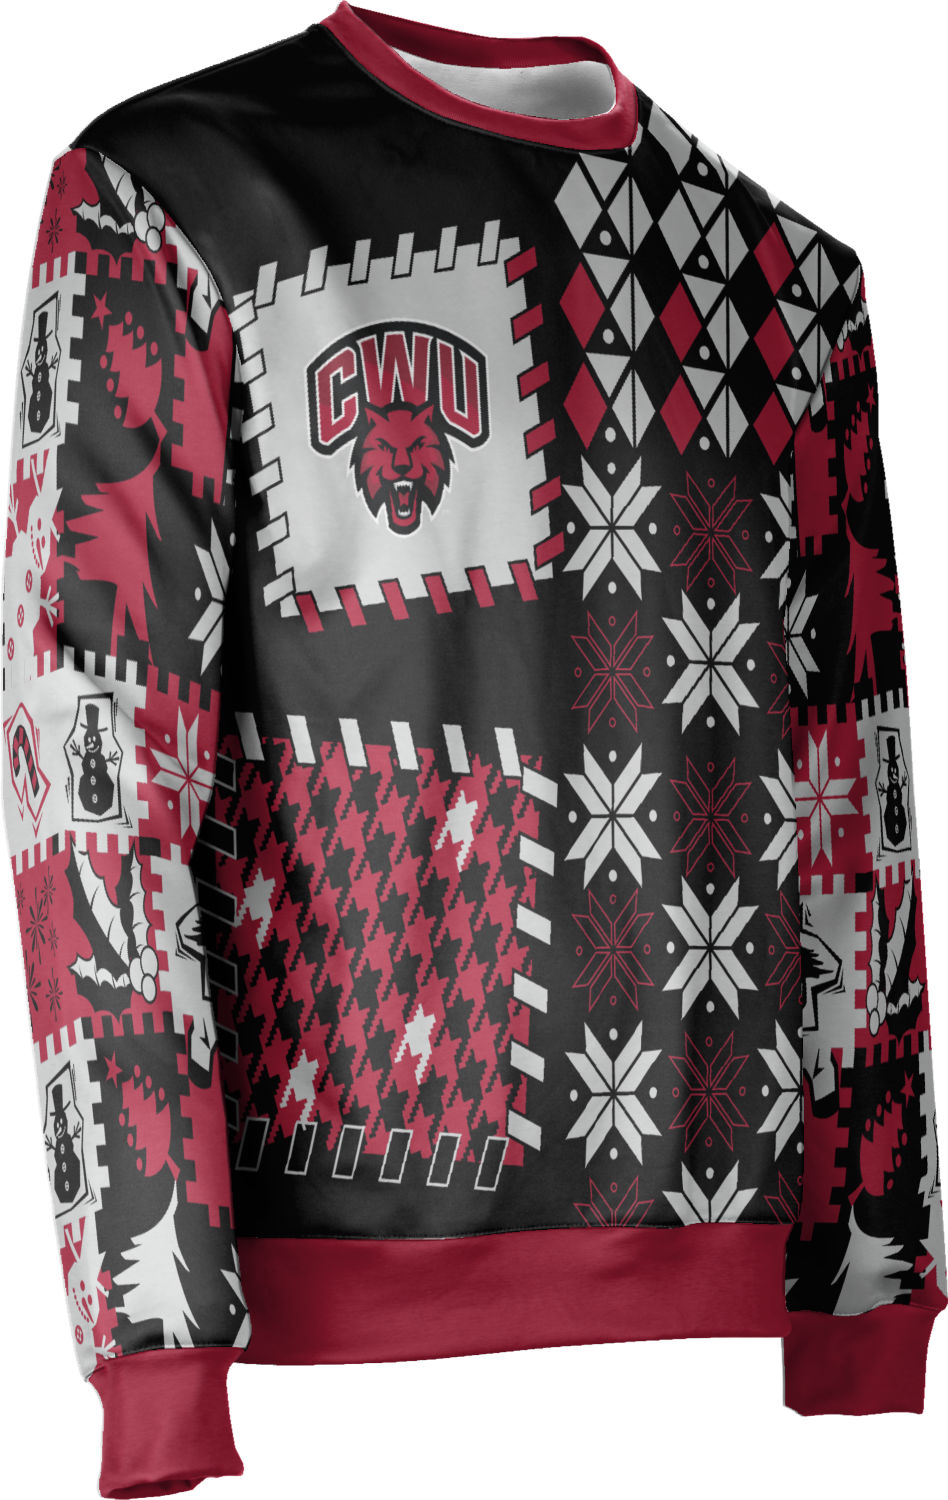 Unisex Central Washington University Ugly Holiday Tradition Sweater (Apparel)